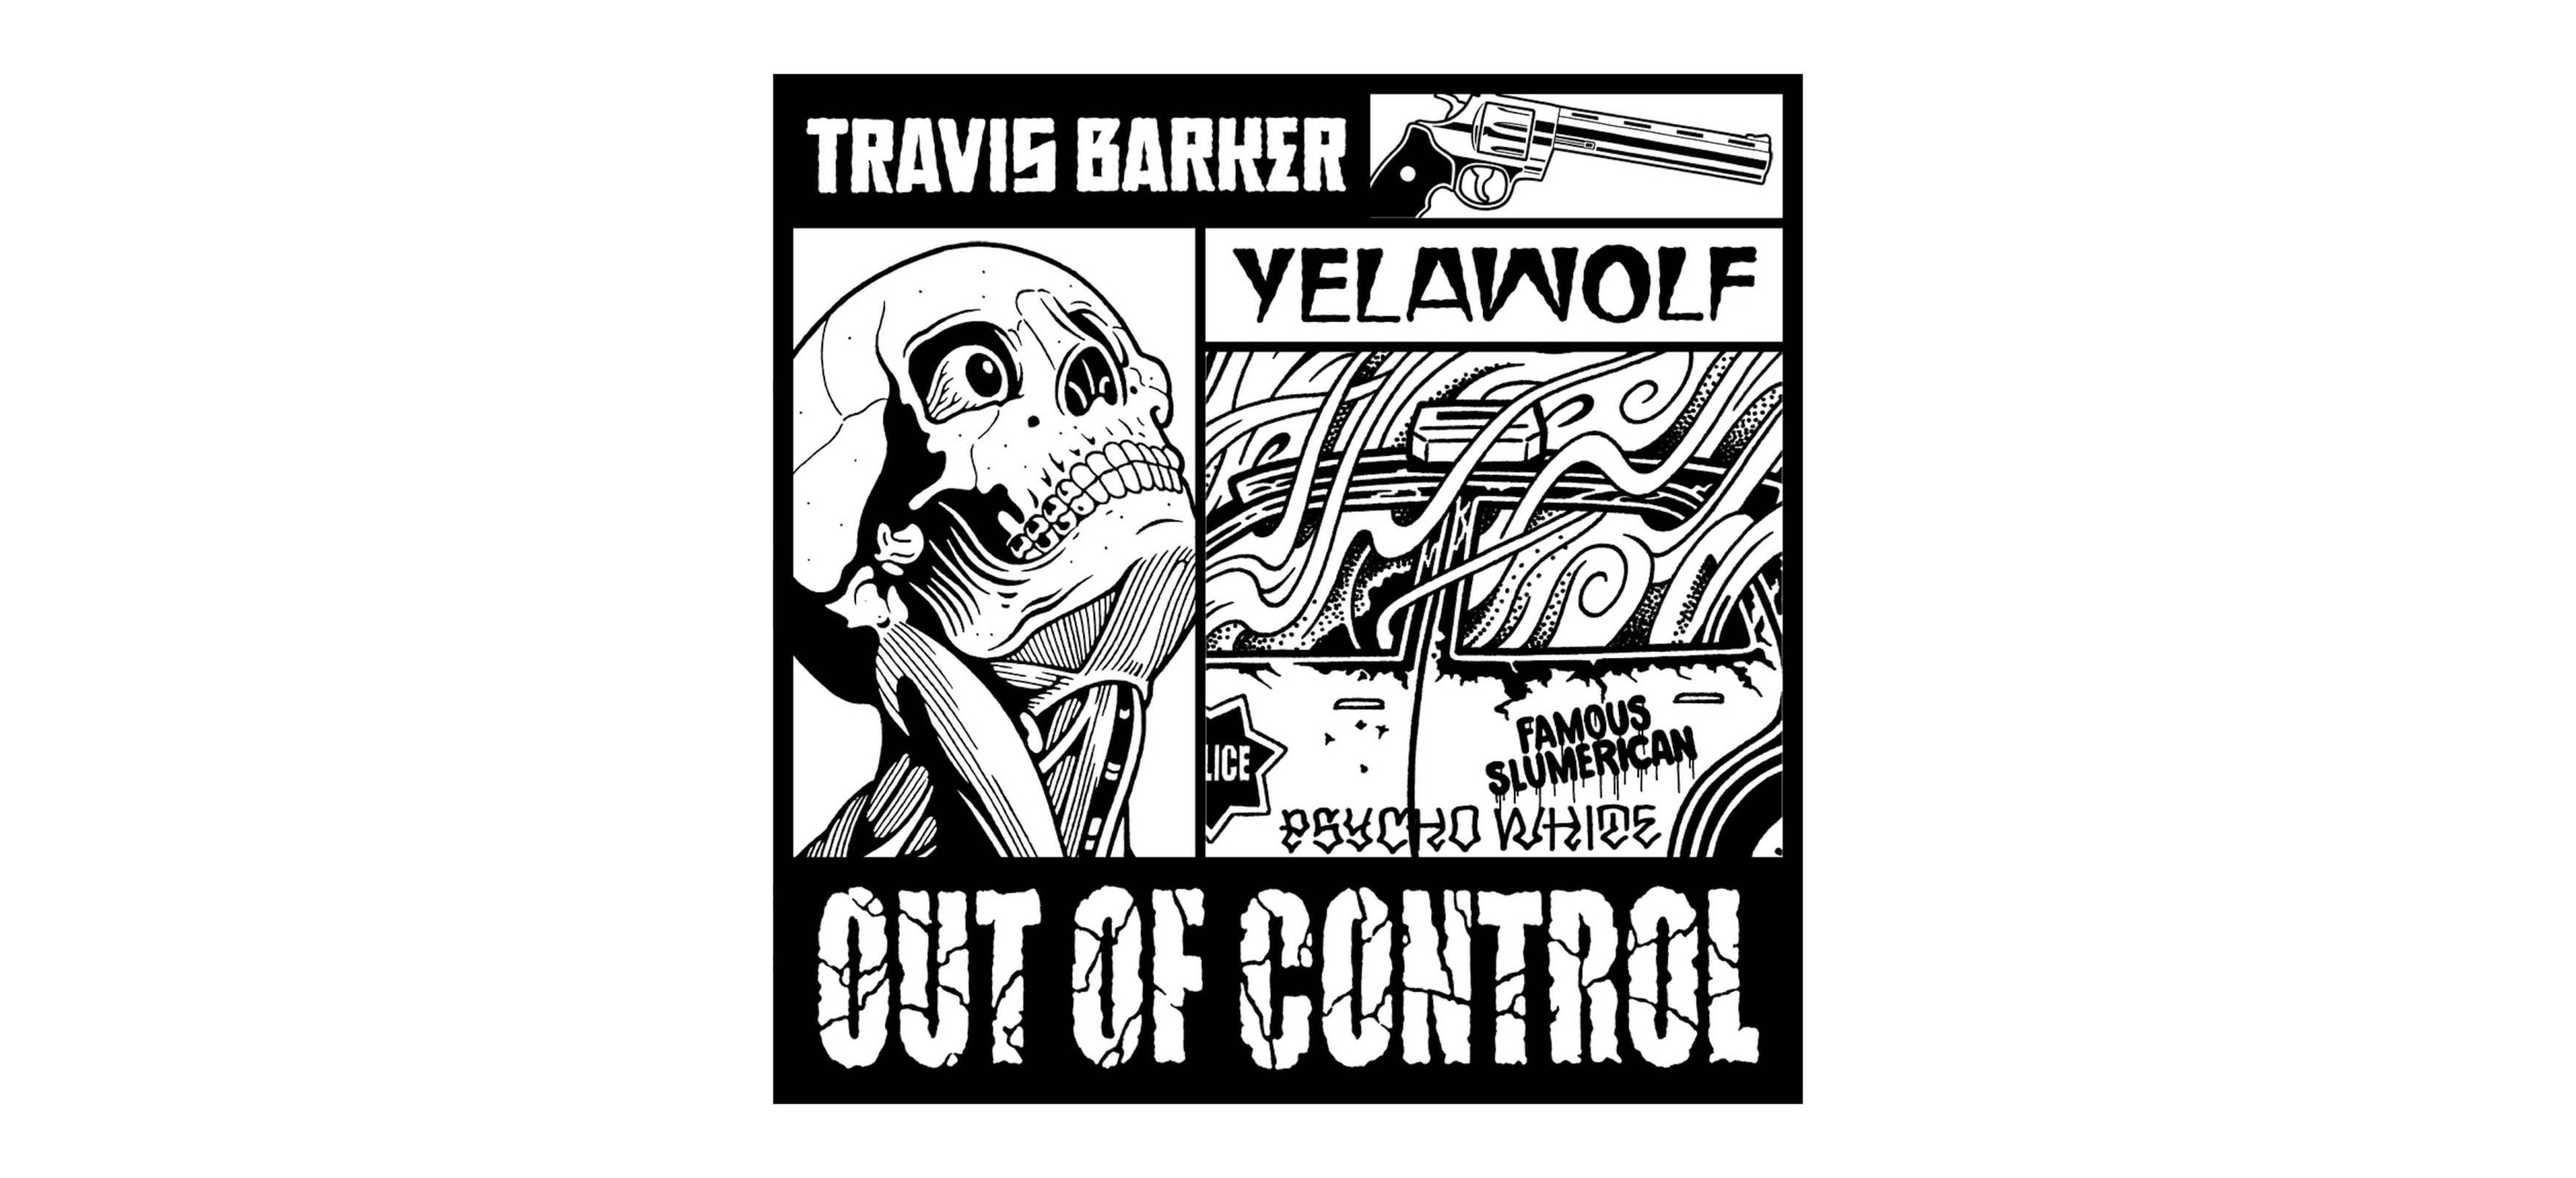 Travis Barker и Yelawolf выпустят «Out Of Control» на виниле